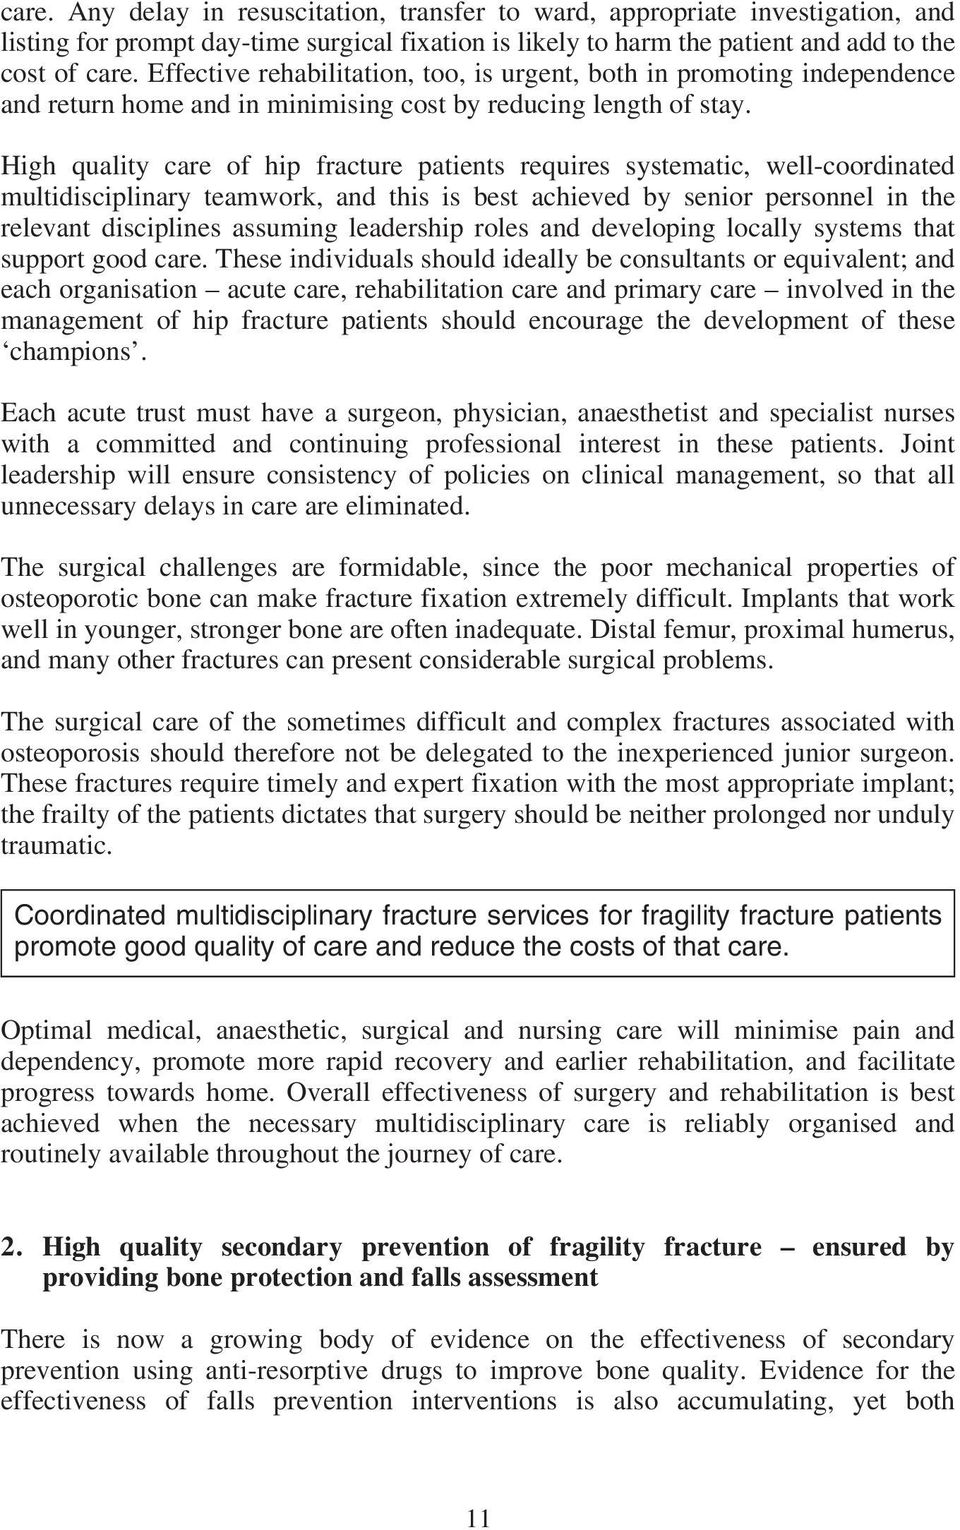 High quality care of hip fracture patients requires systematic, well-coordinated multidisciplinary teamwork, and this is best achieved by senior personnel in the relevant disciplines assuming